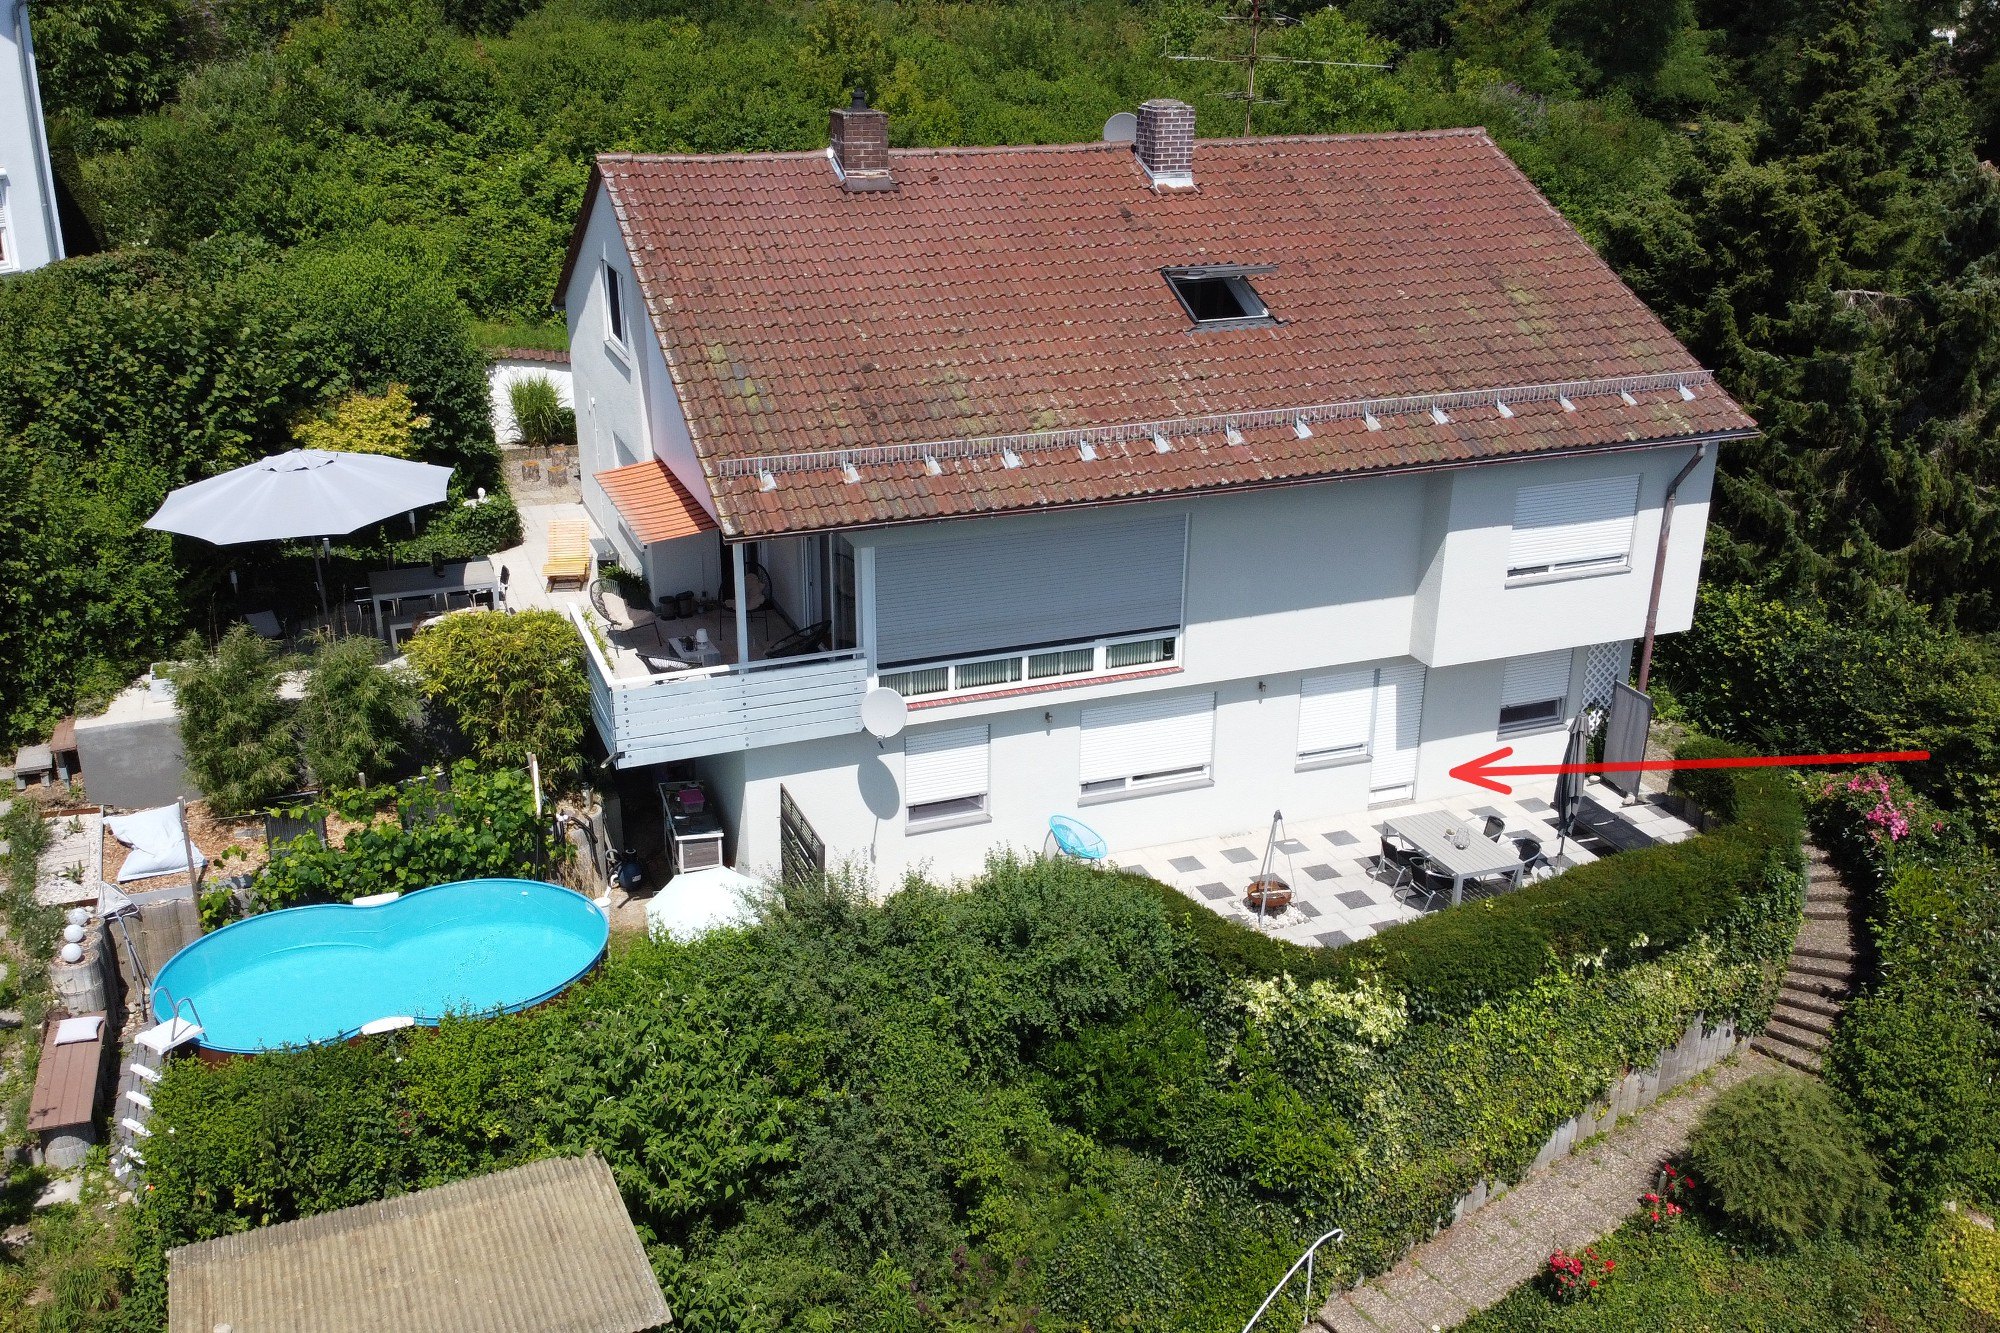 air foto of the holiday home